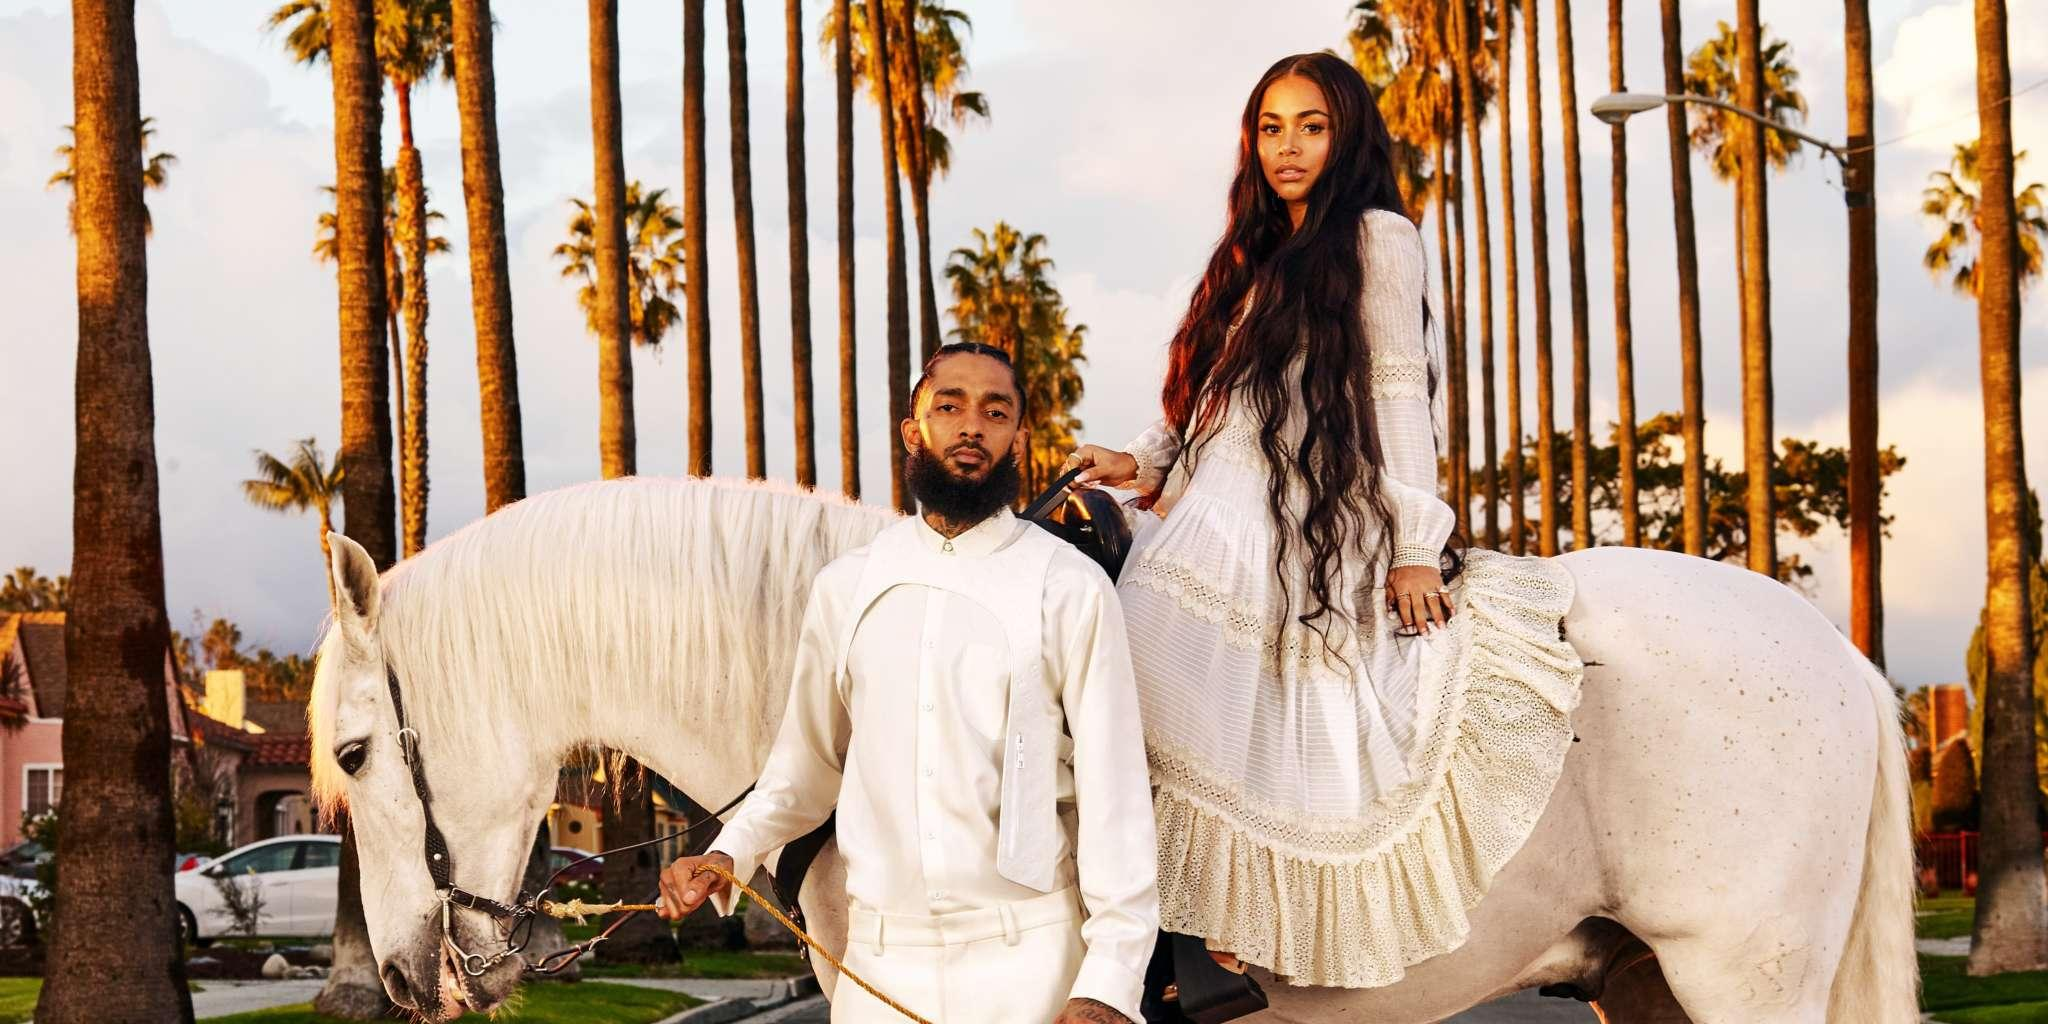 Lauren London Posts Heartbreaking Quote Months After Nipsey Hussle's Passing